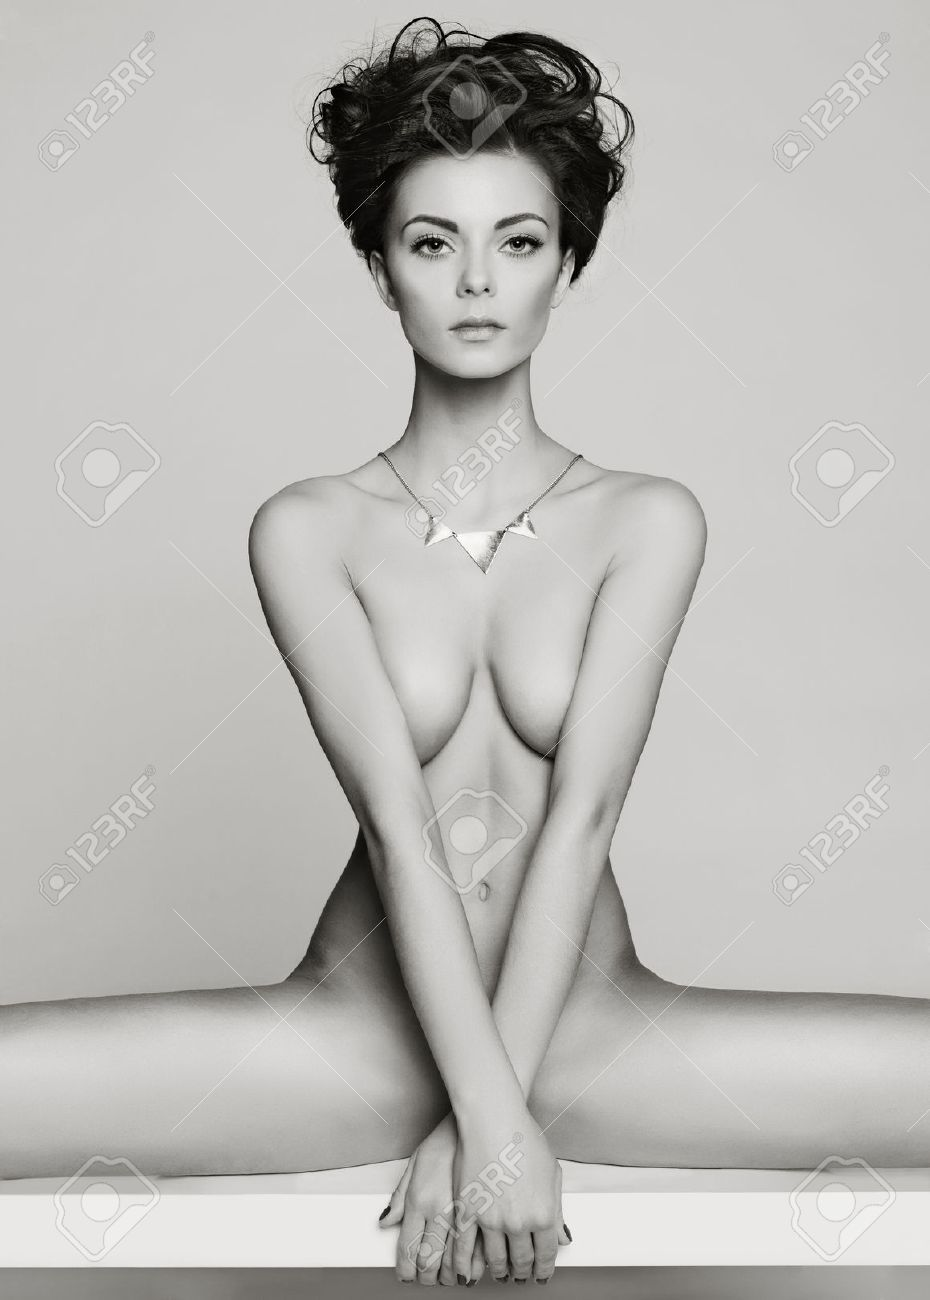 Fashion art studio photo of elegant naked lady Standard-Bild - 35537252